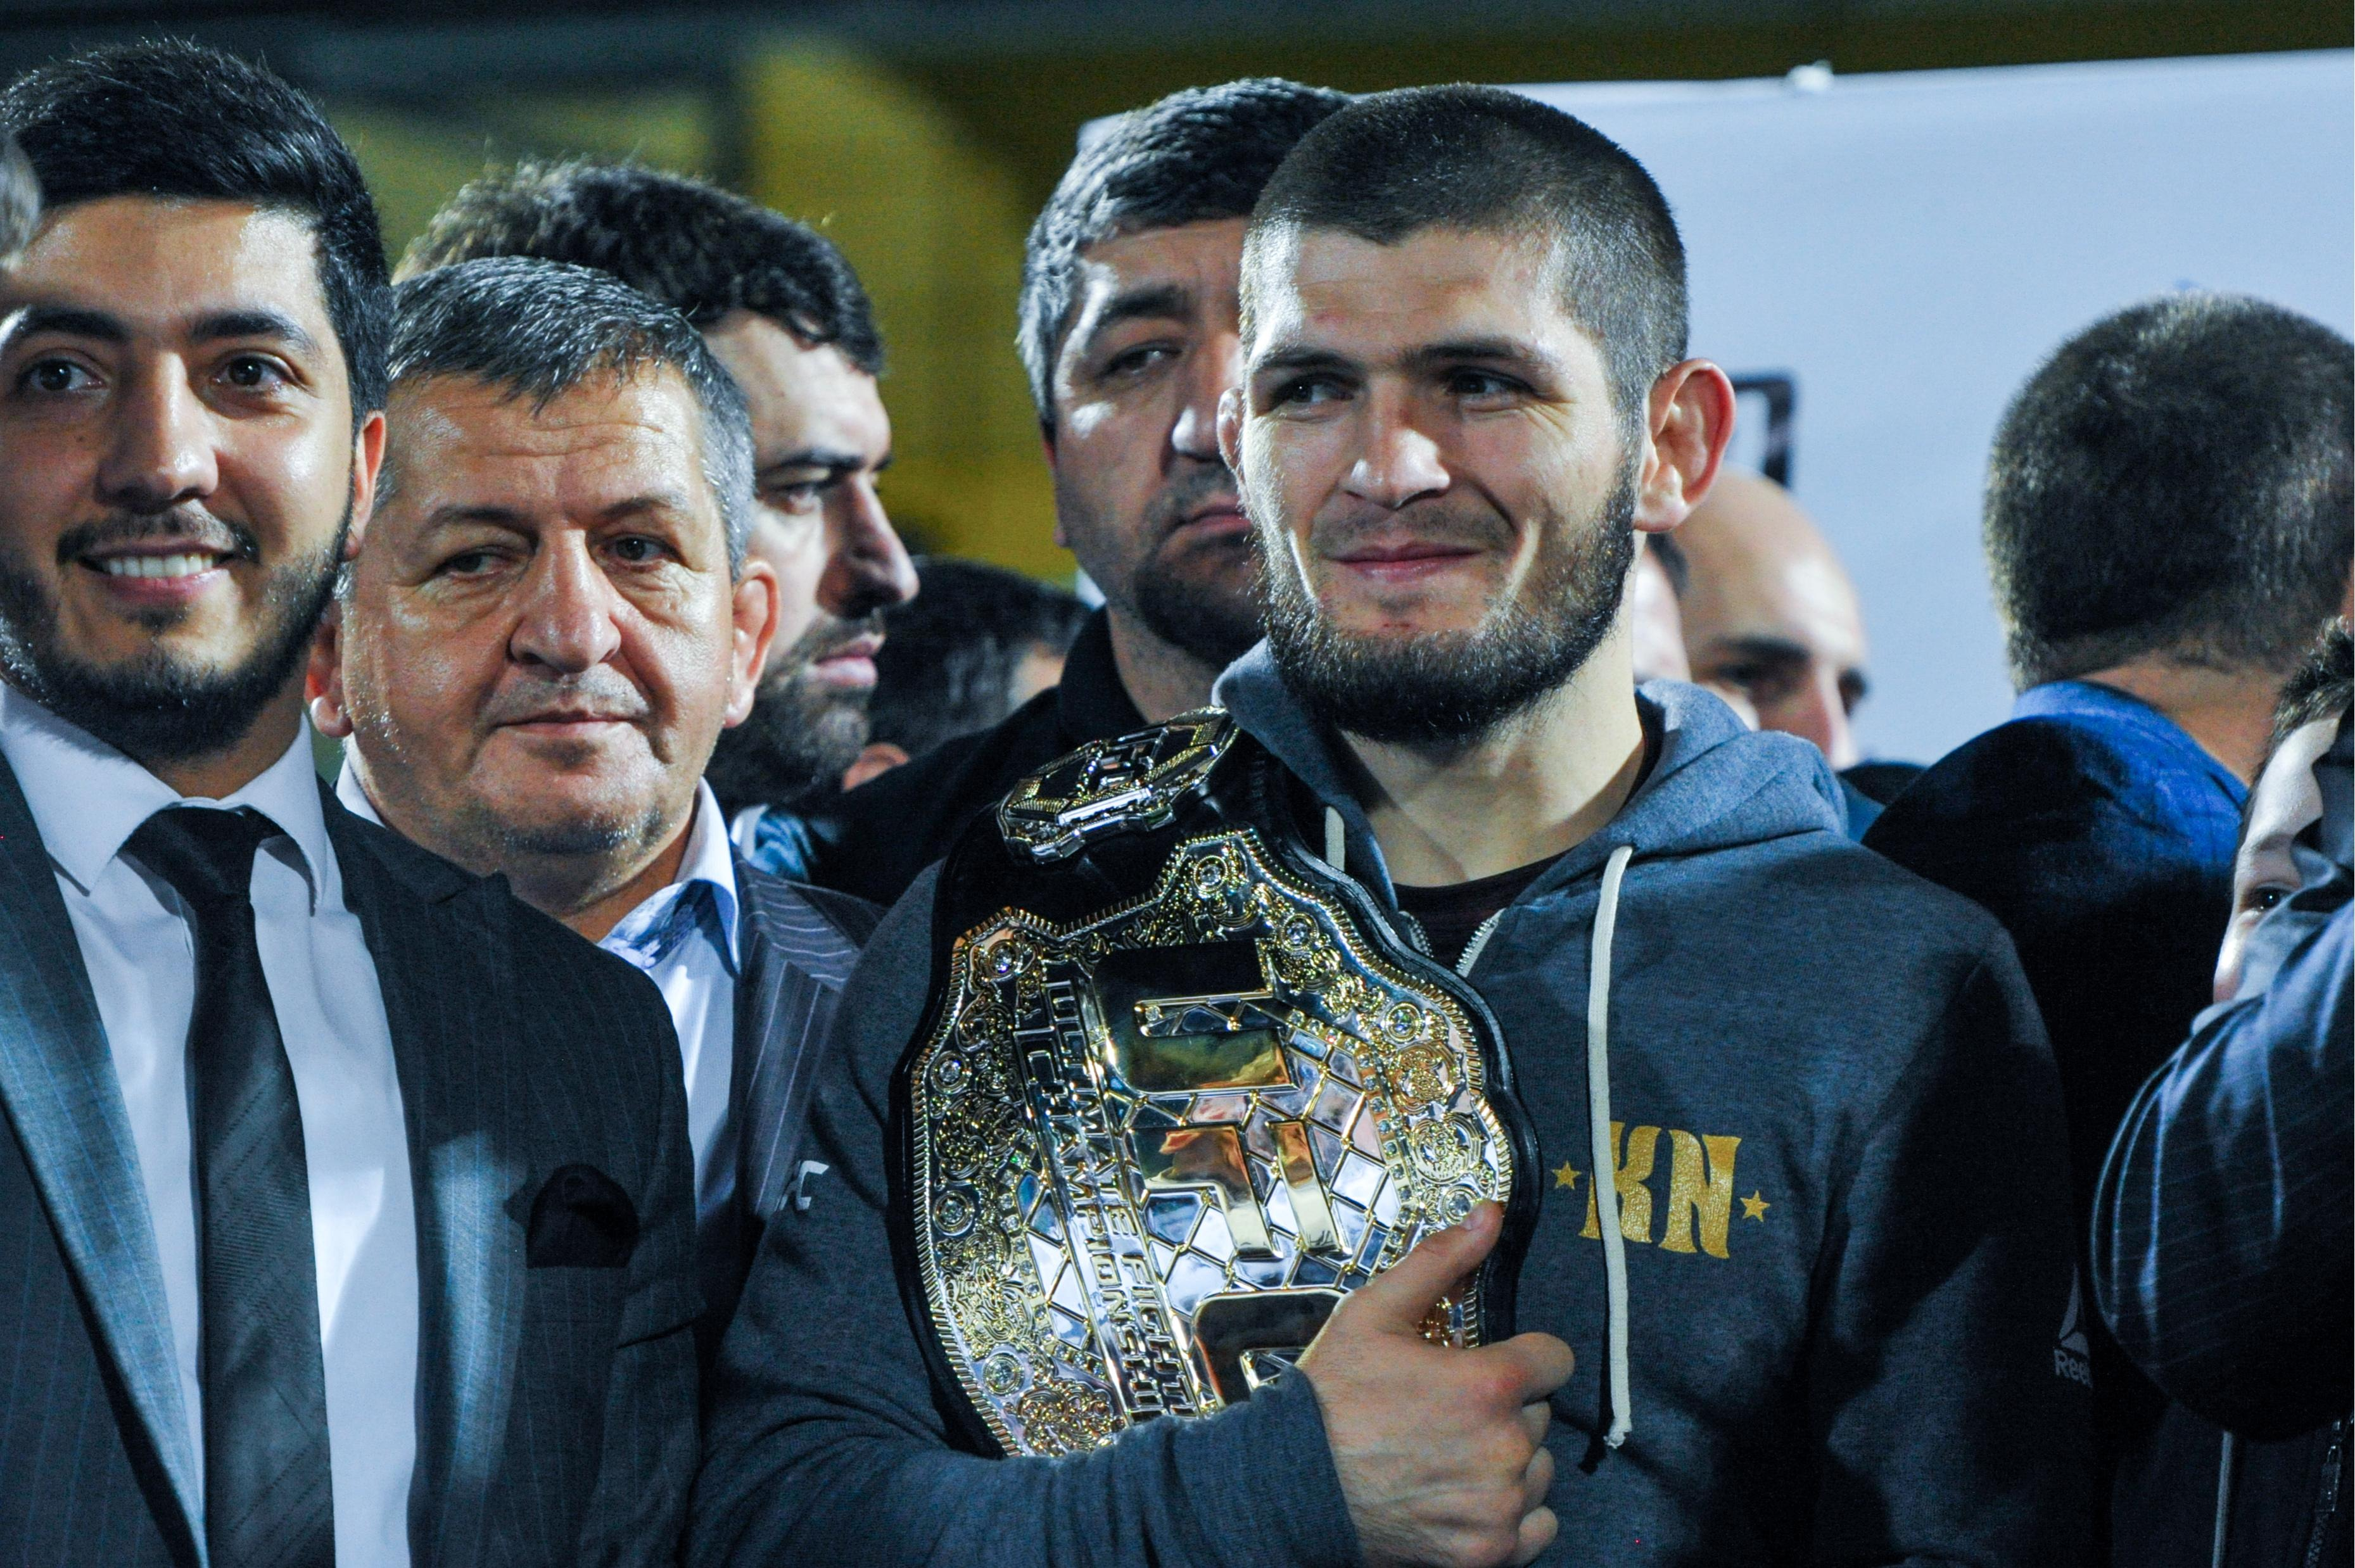 Khabib has his belt but faces losing his £1.5m purse